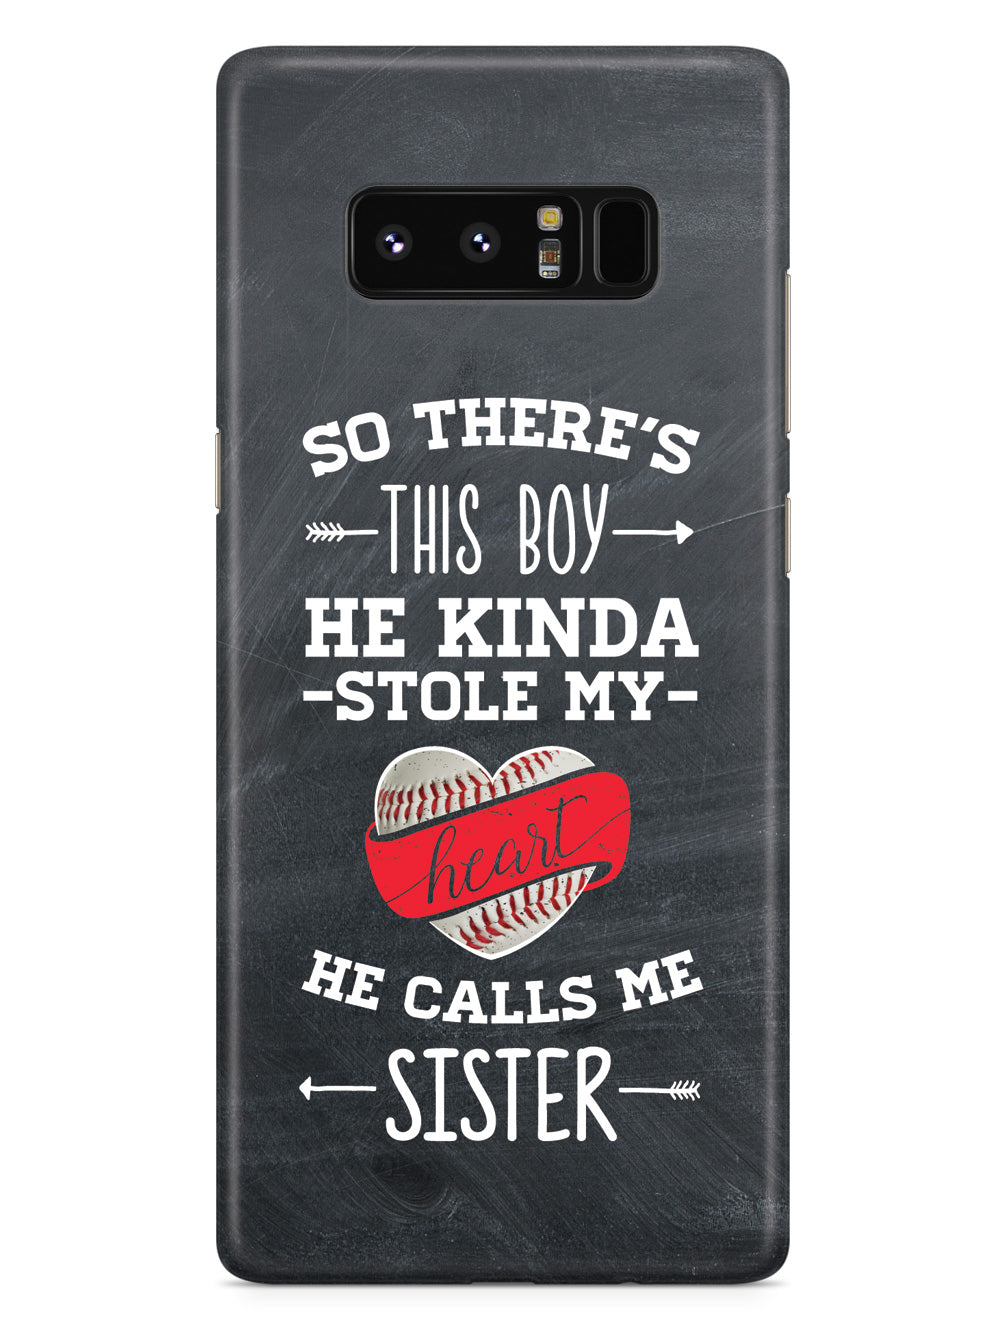 So There's This Boy... Baseball Player - Sister Case